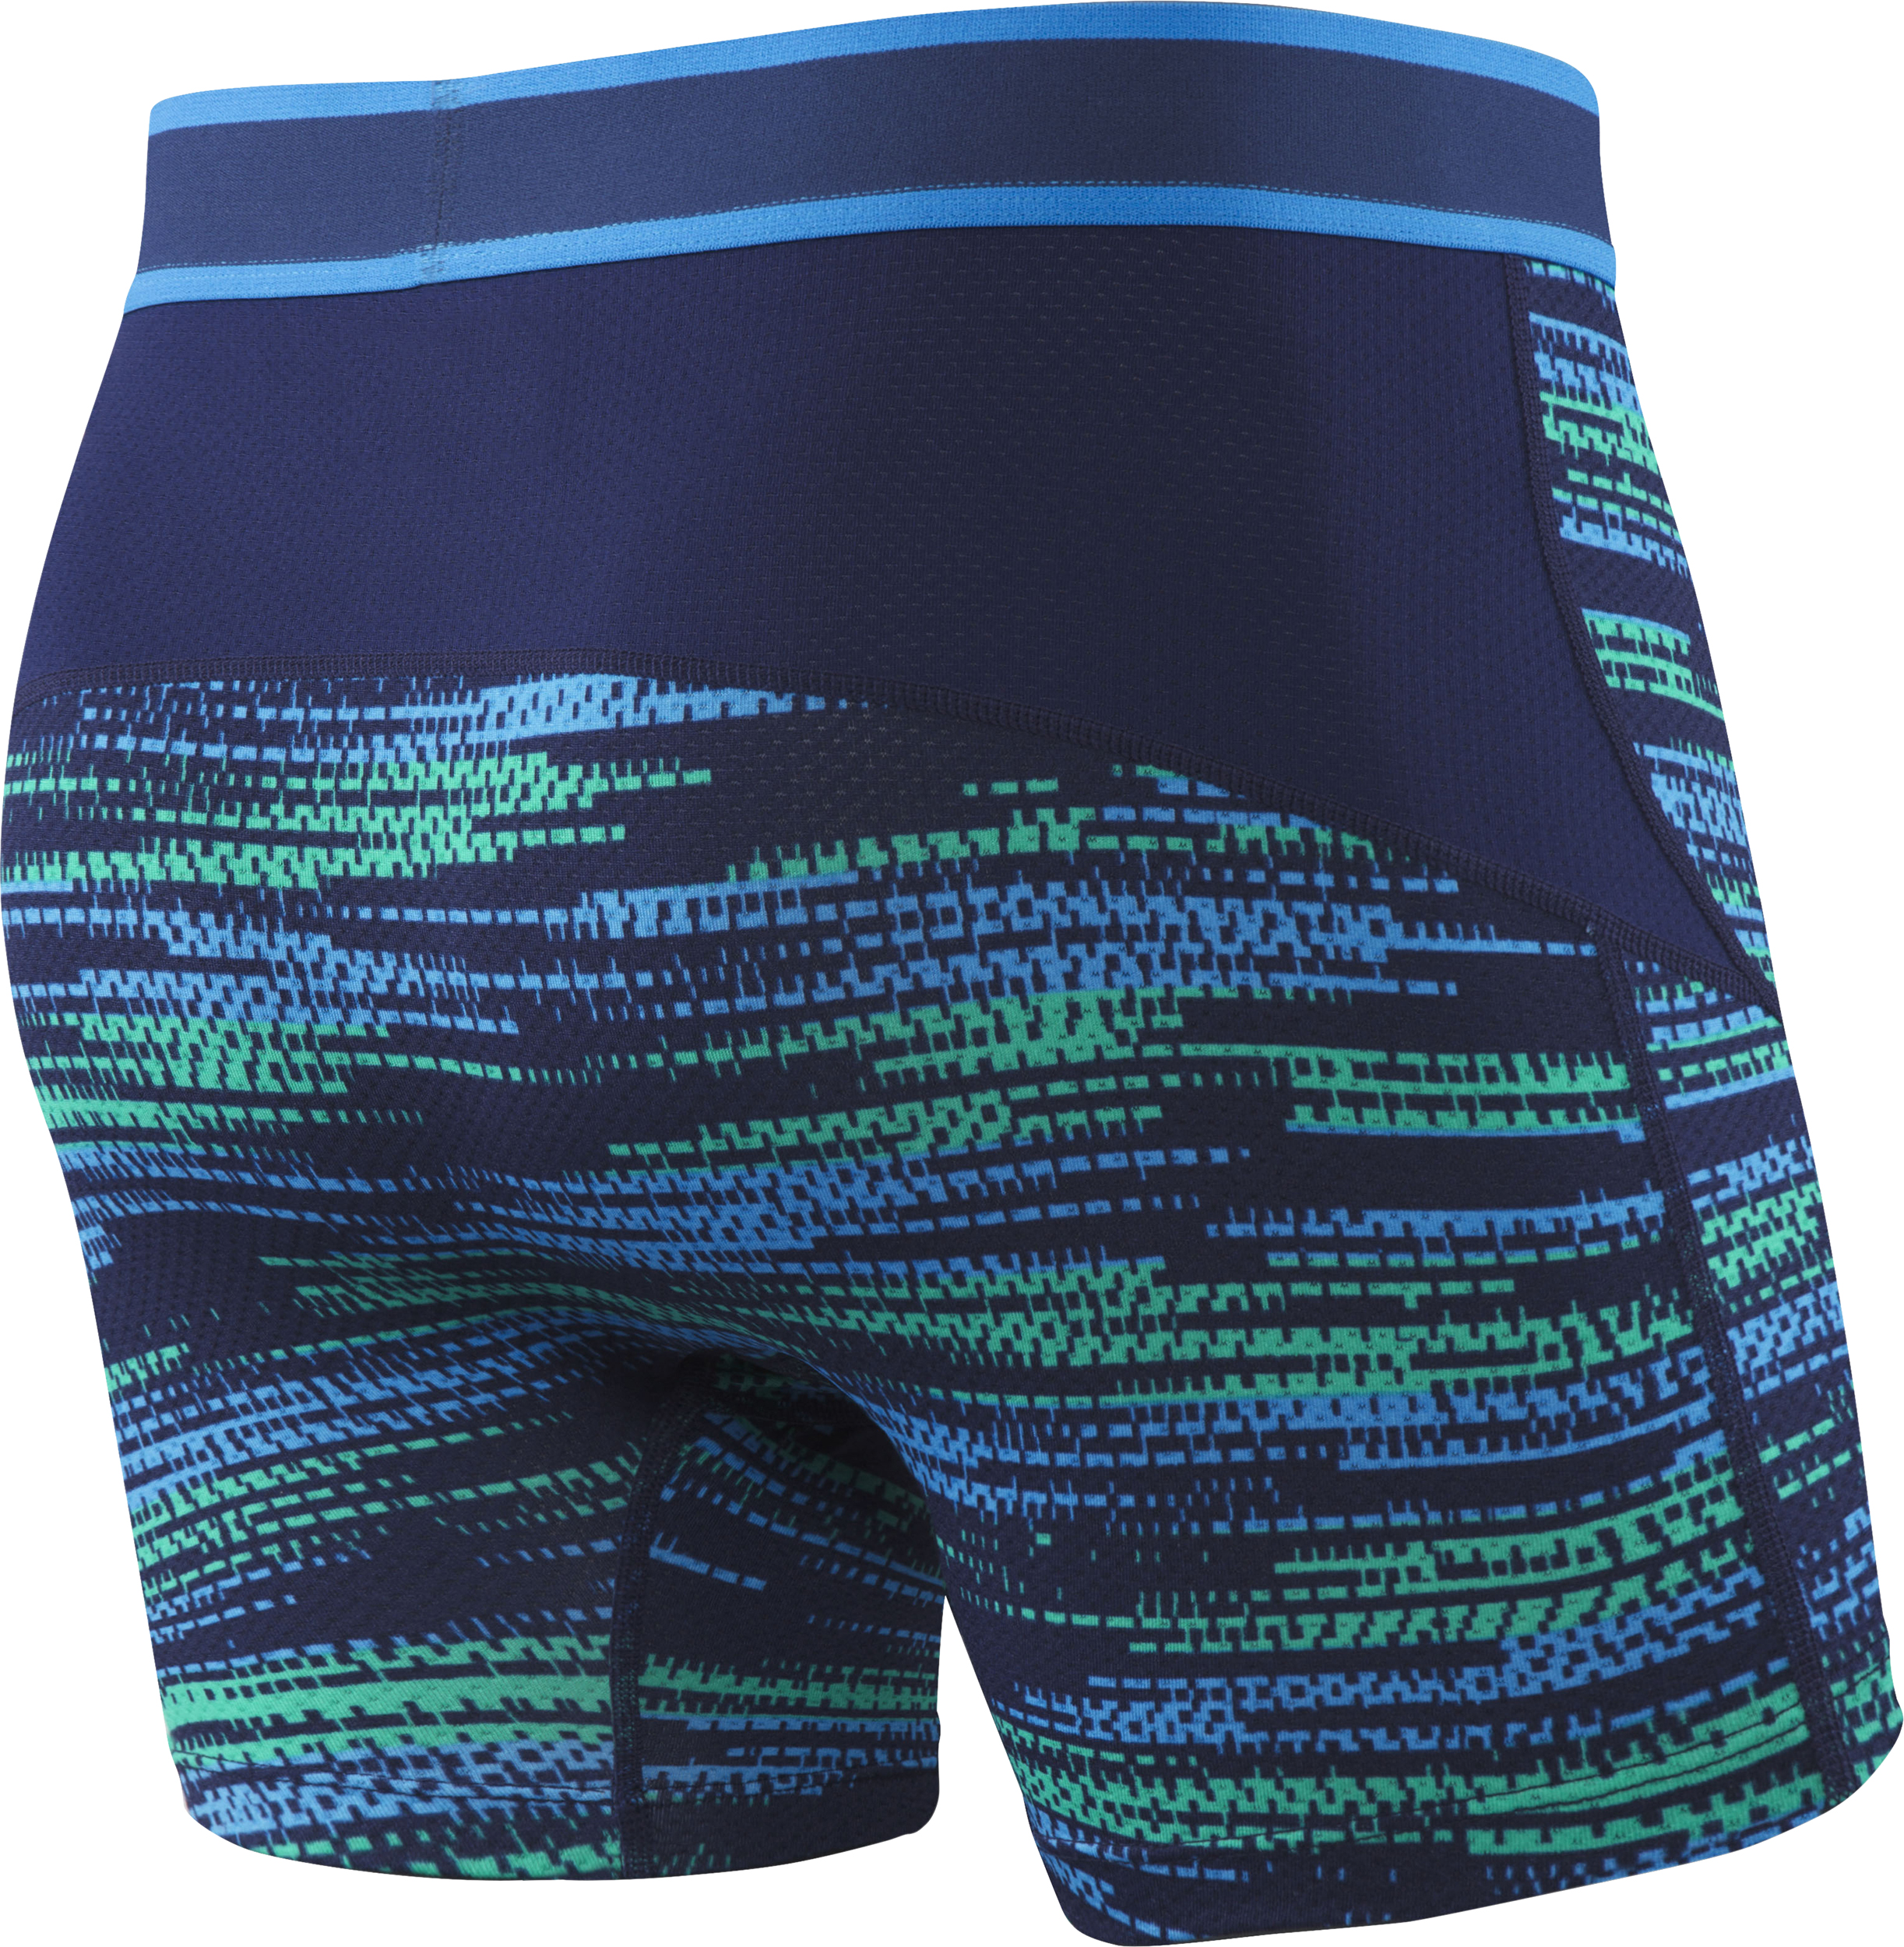 ba04c4cafa6 Saxx Kinetic Boxers - Men s